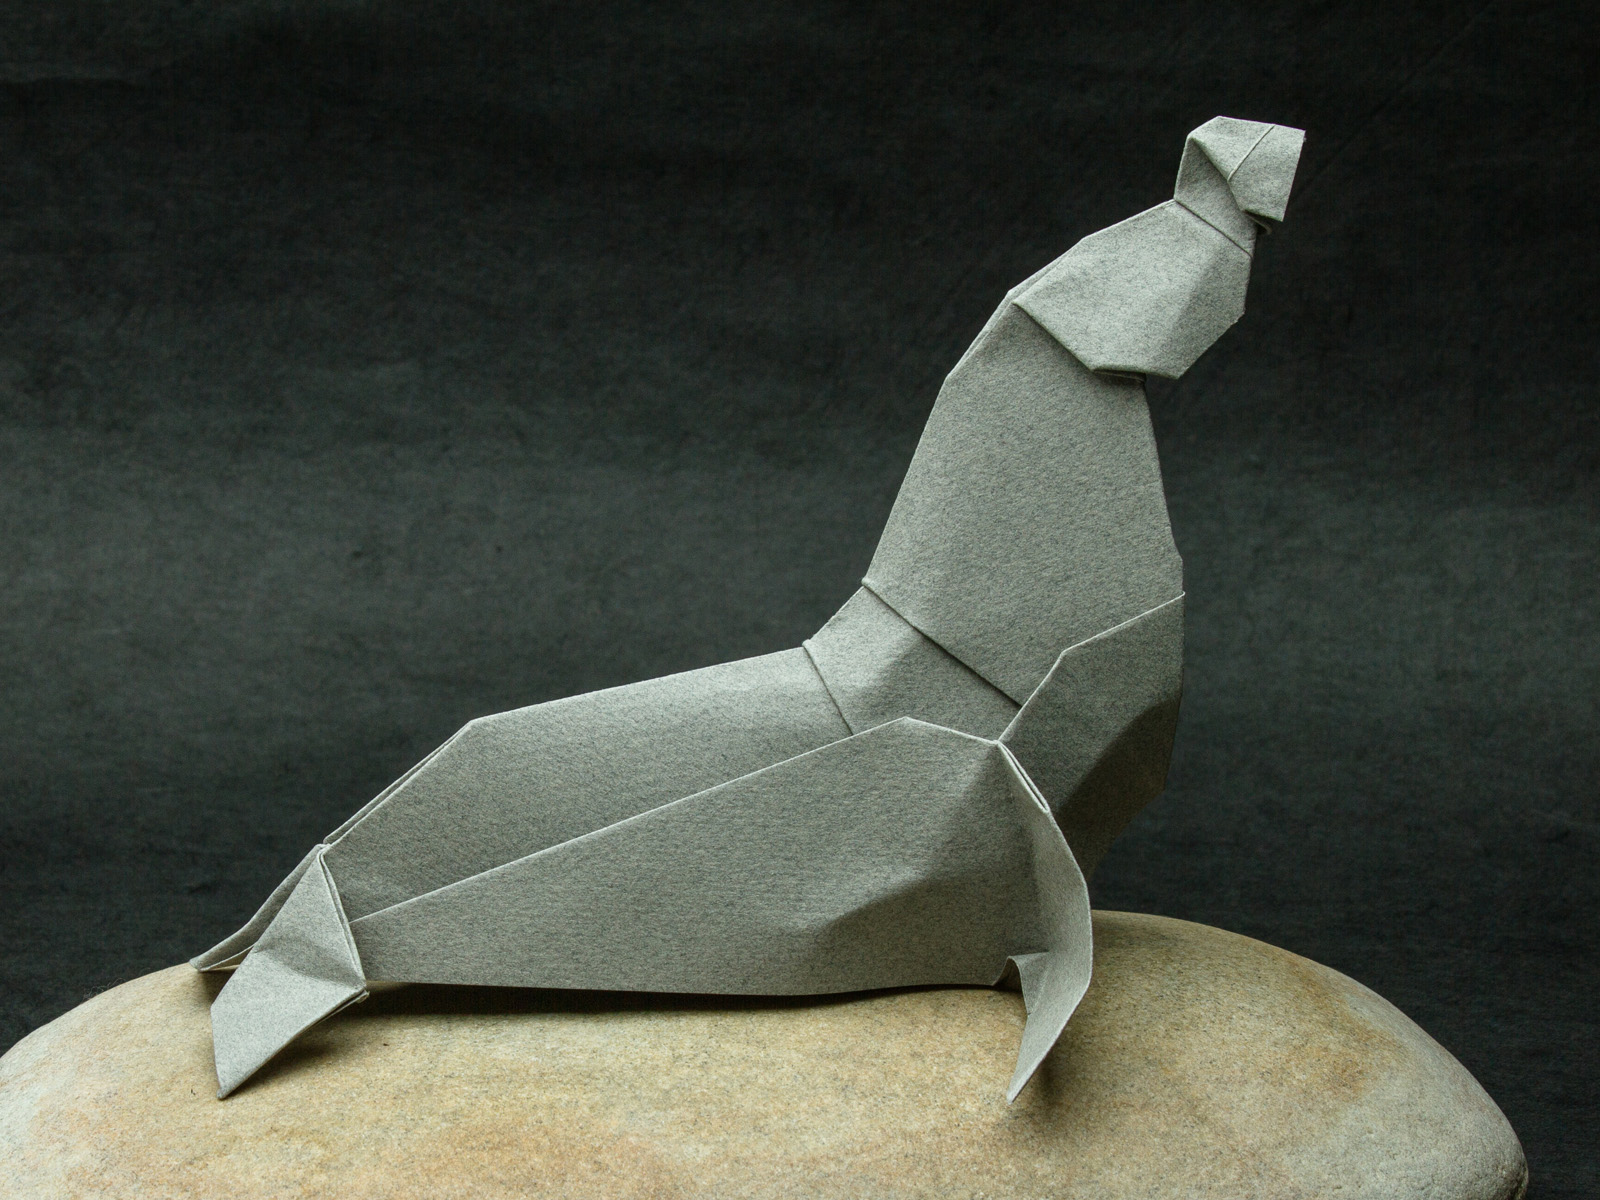 Zing origami arctic marine animals photo by bob plotkin all rights reserved elephant seal 2010 jeuxipadfo Gallery